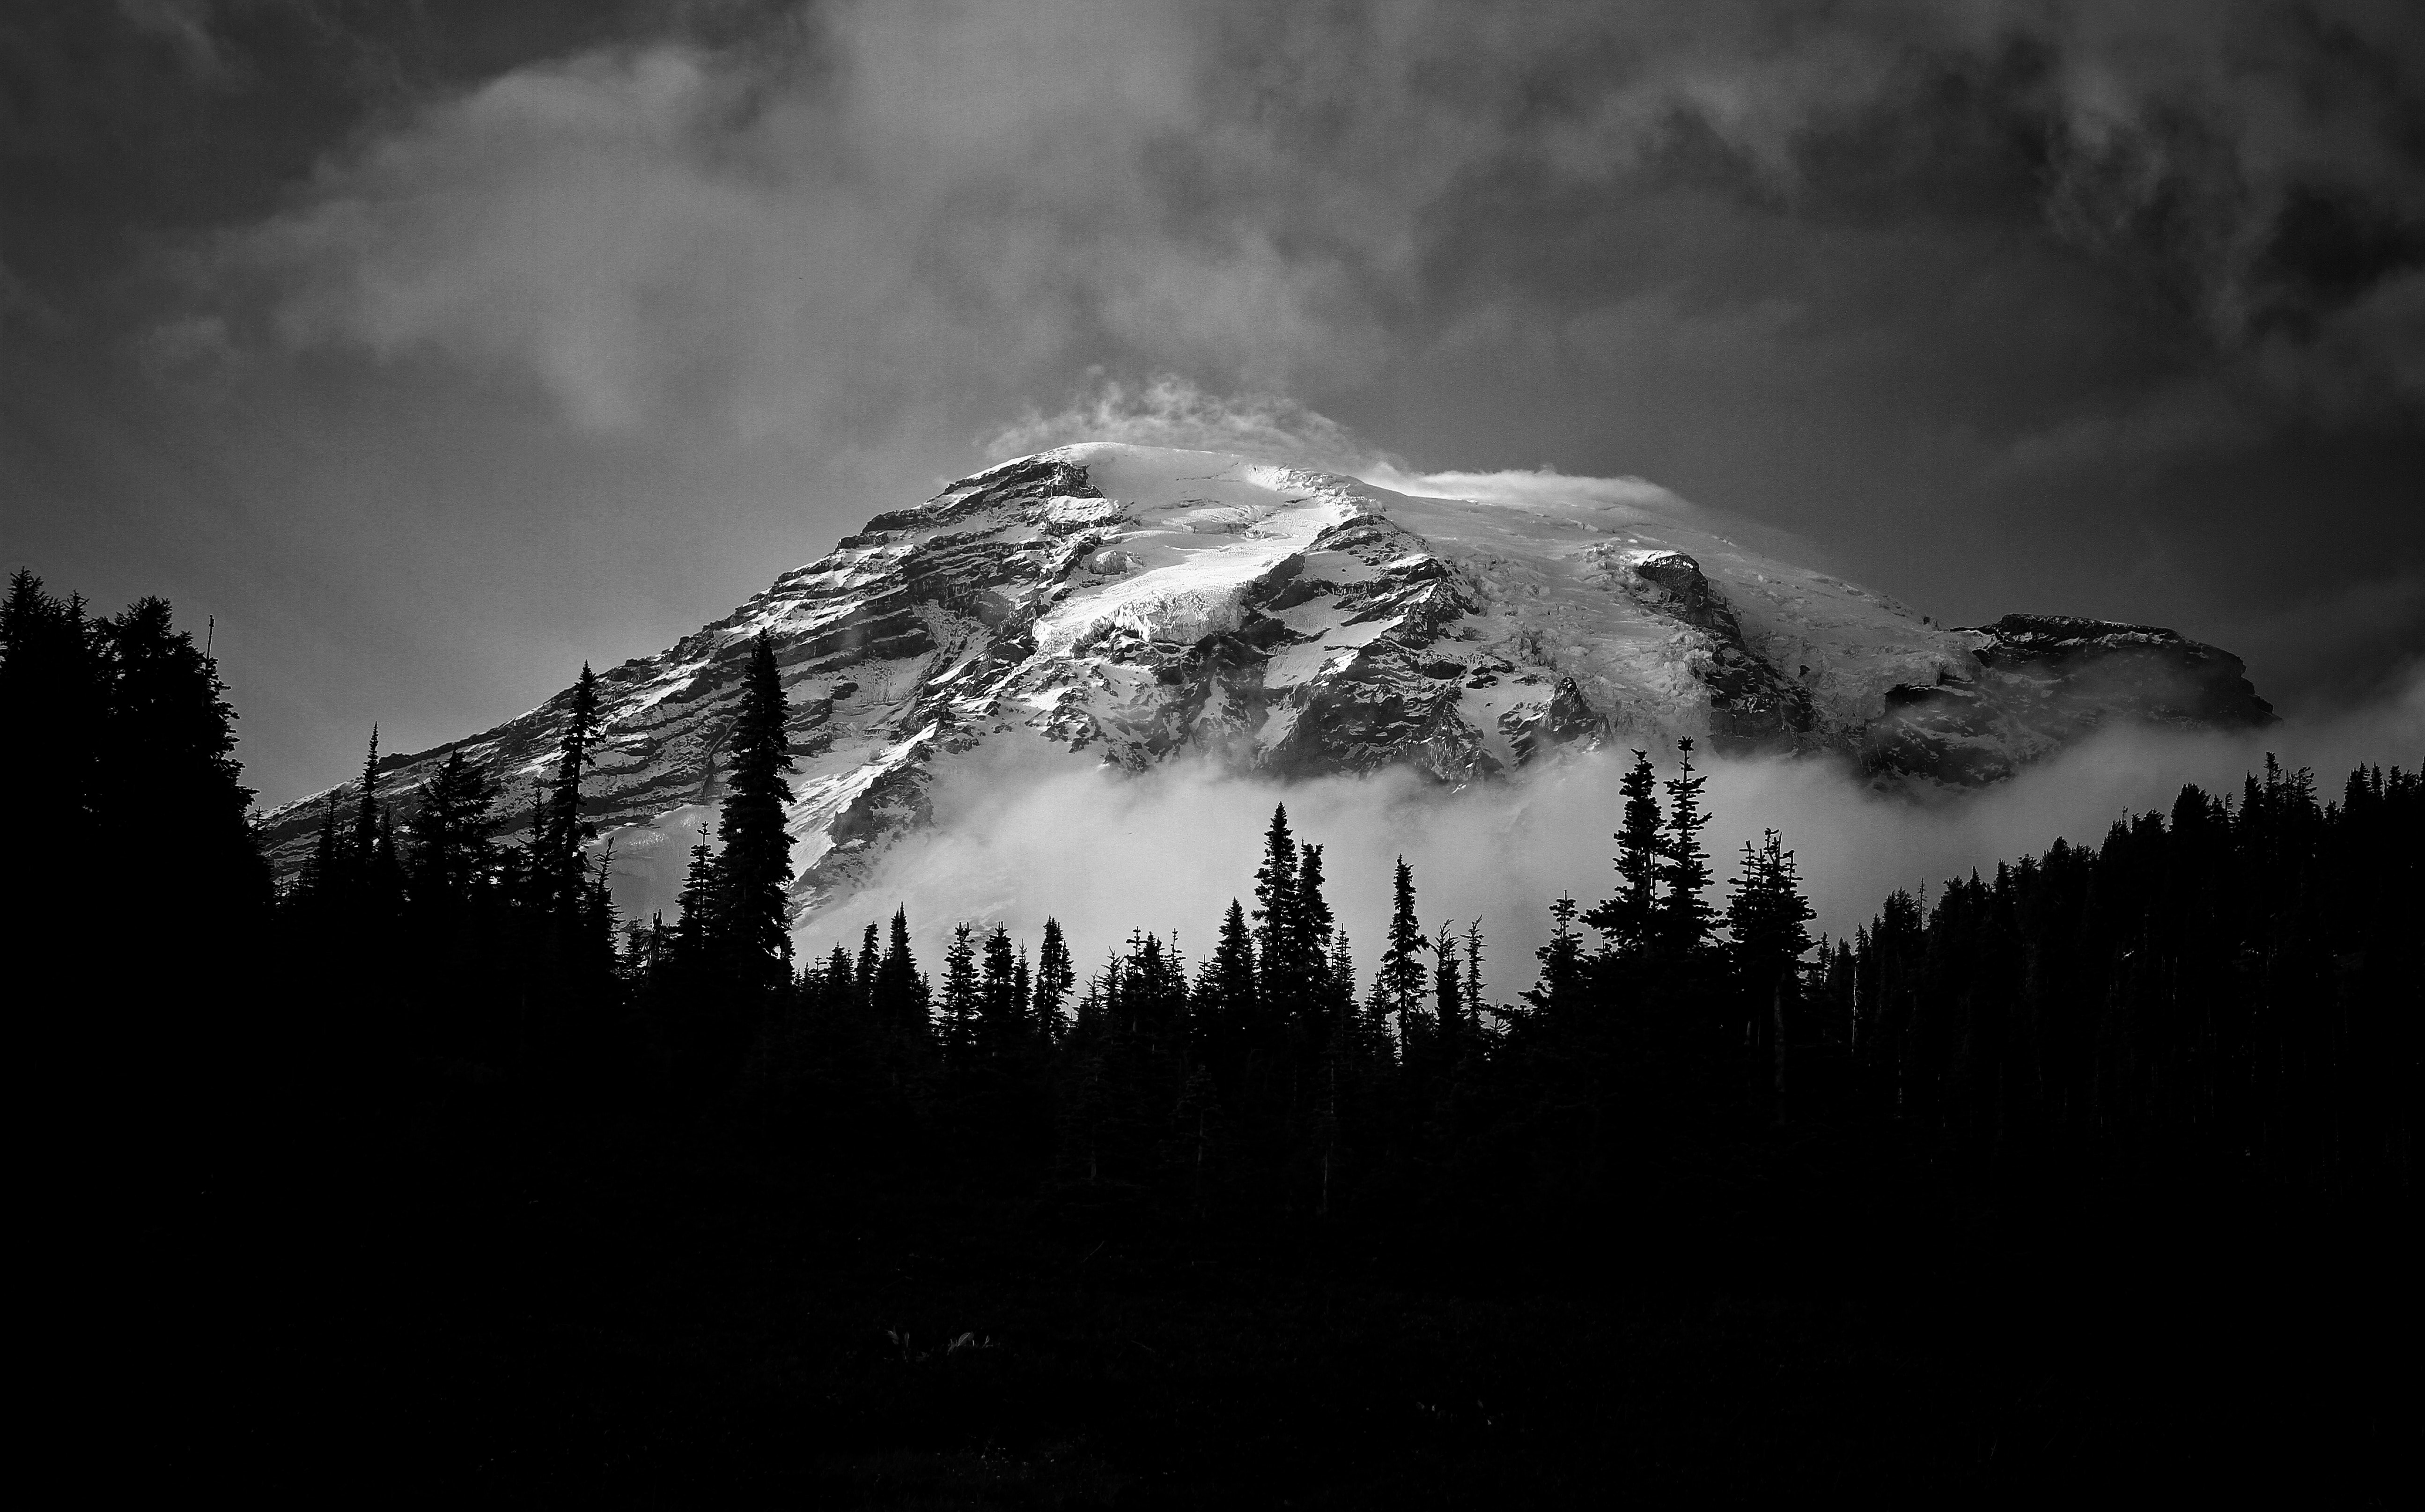 Grayscale photo of a mountain covered with snow balamurugan anbazhagan